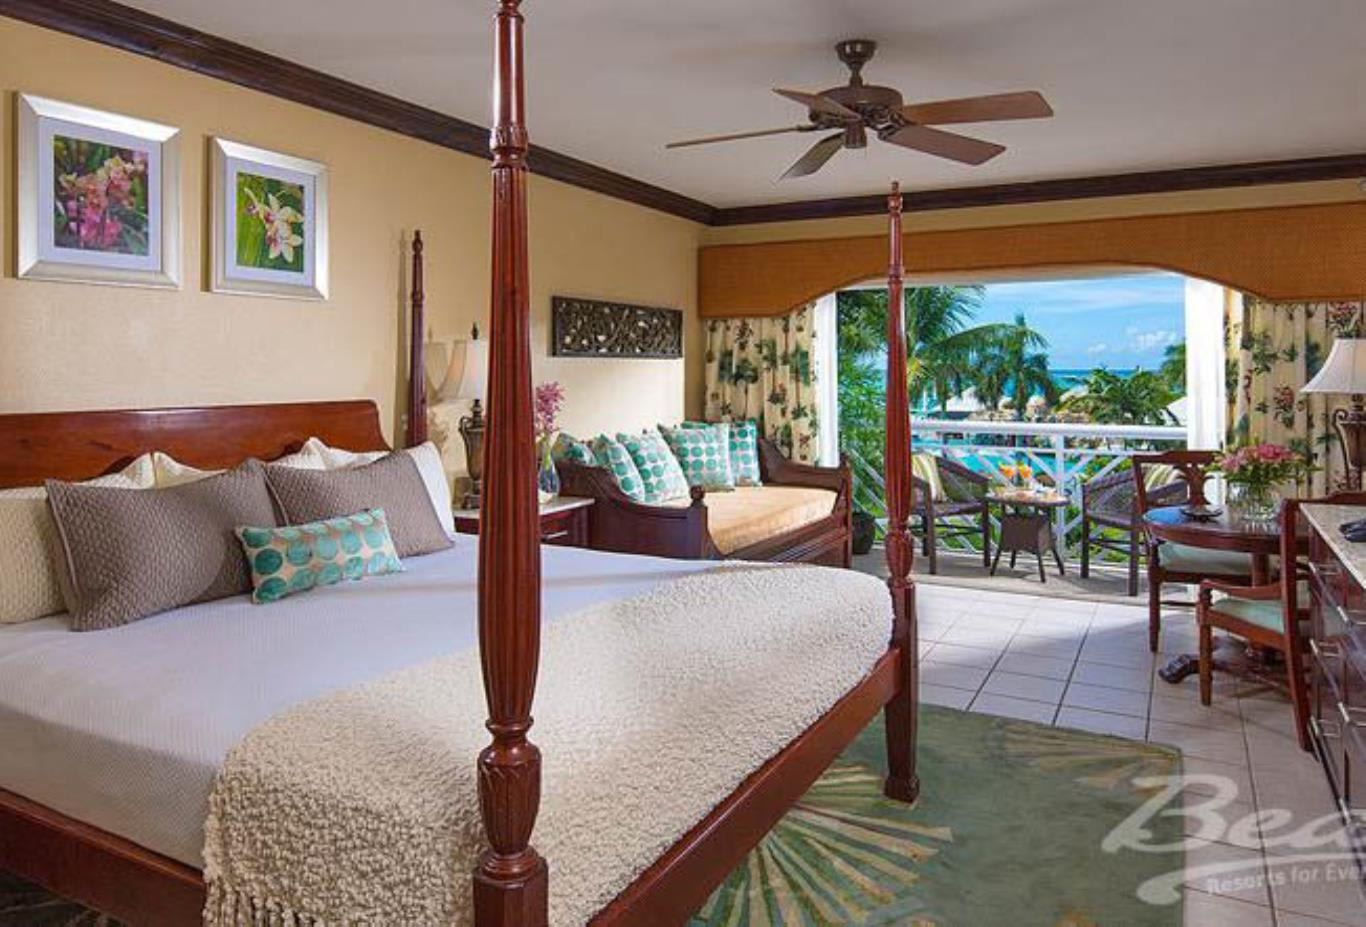 Caribbean Honeymoon Grande Luxe - GK,GD